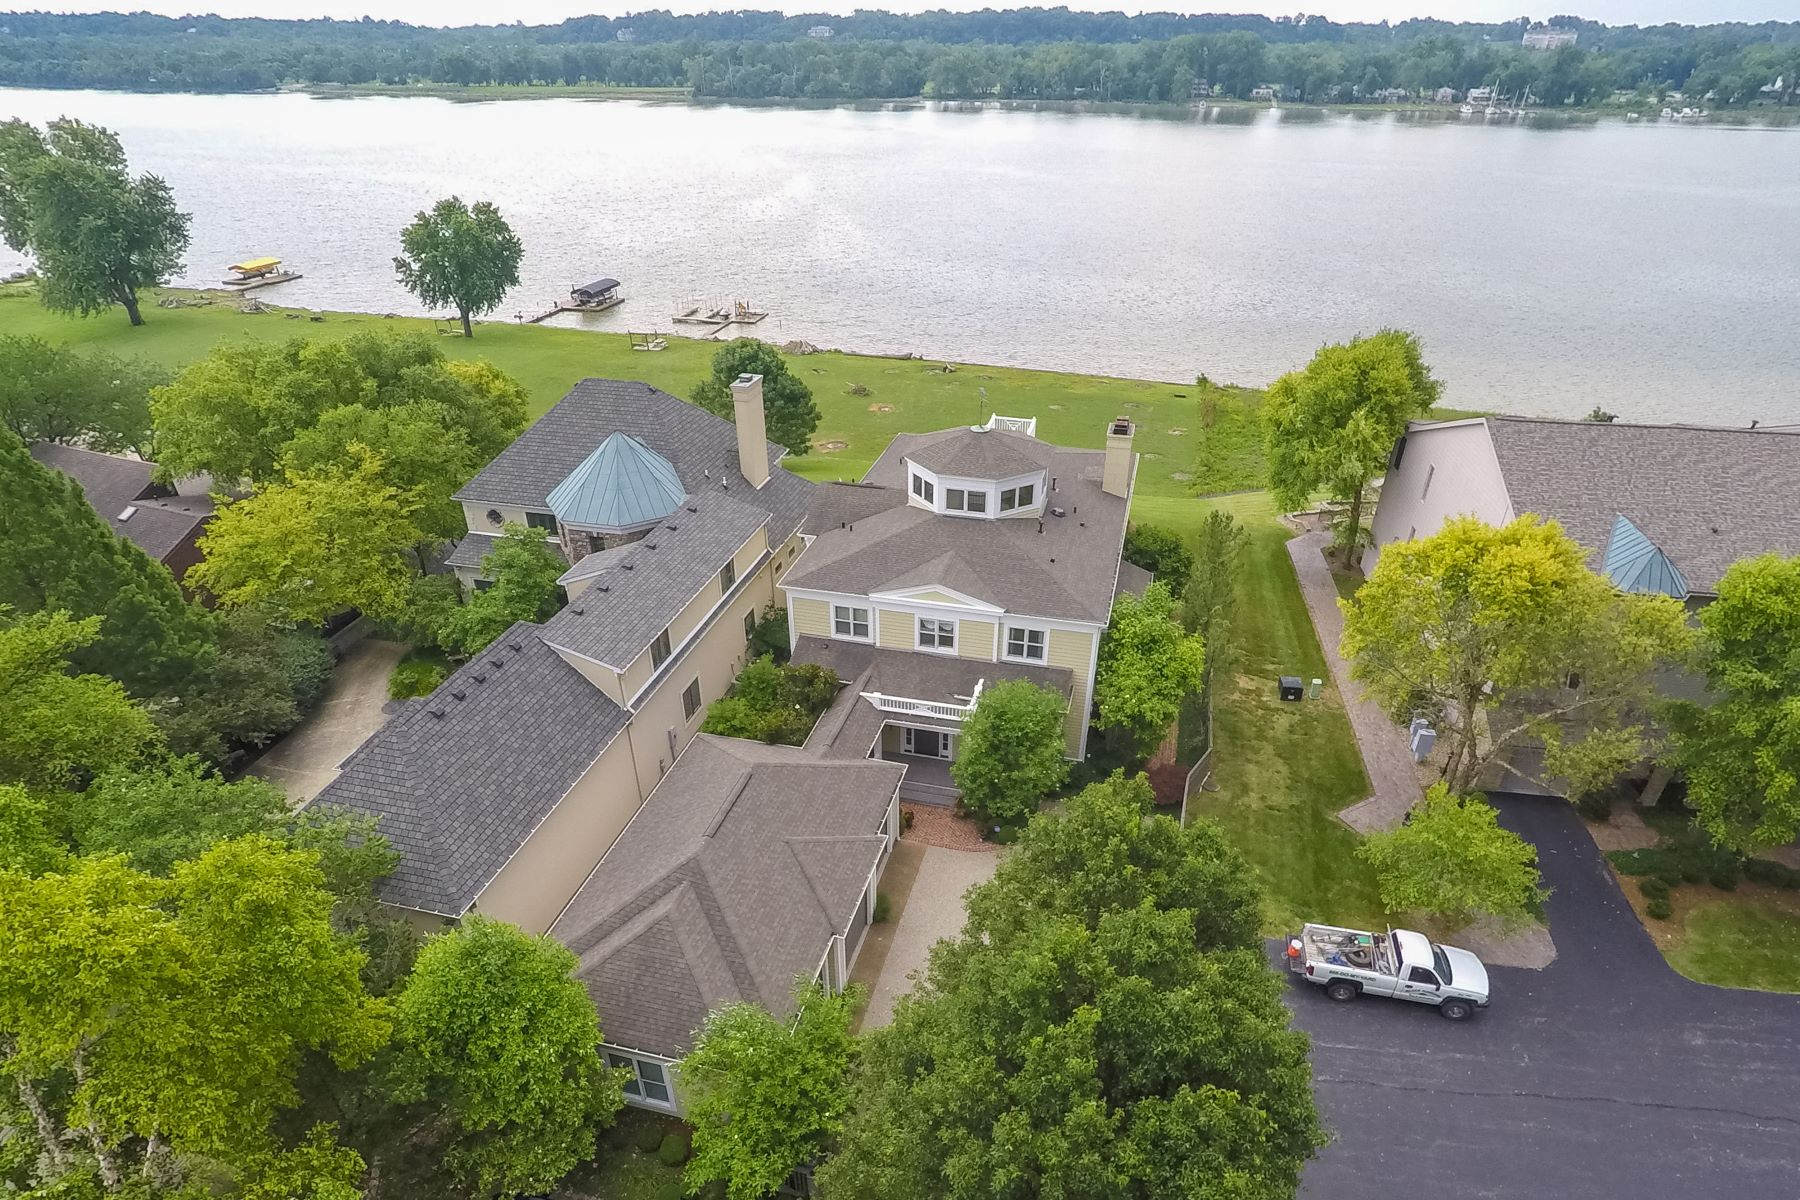 Additional photo for property listing at 2200.25 Utica Pike  Jeffersonville, Indiana 47130 United States